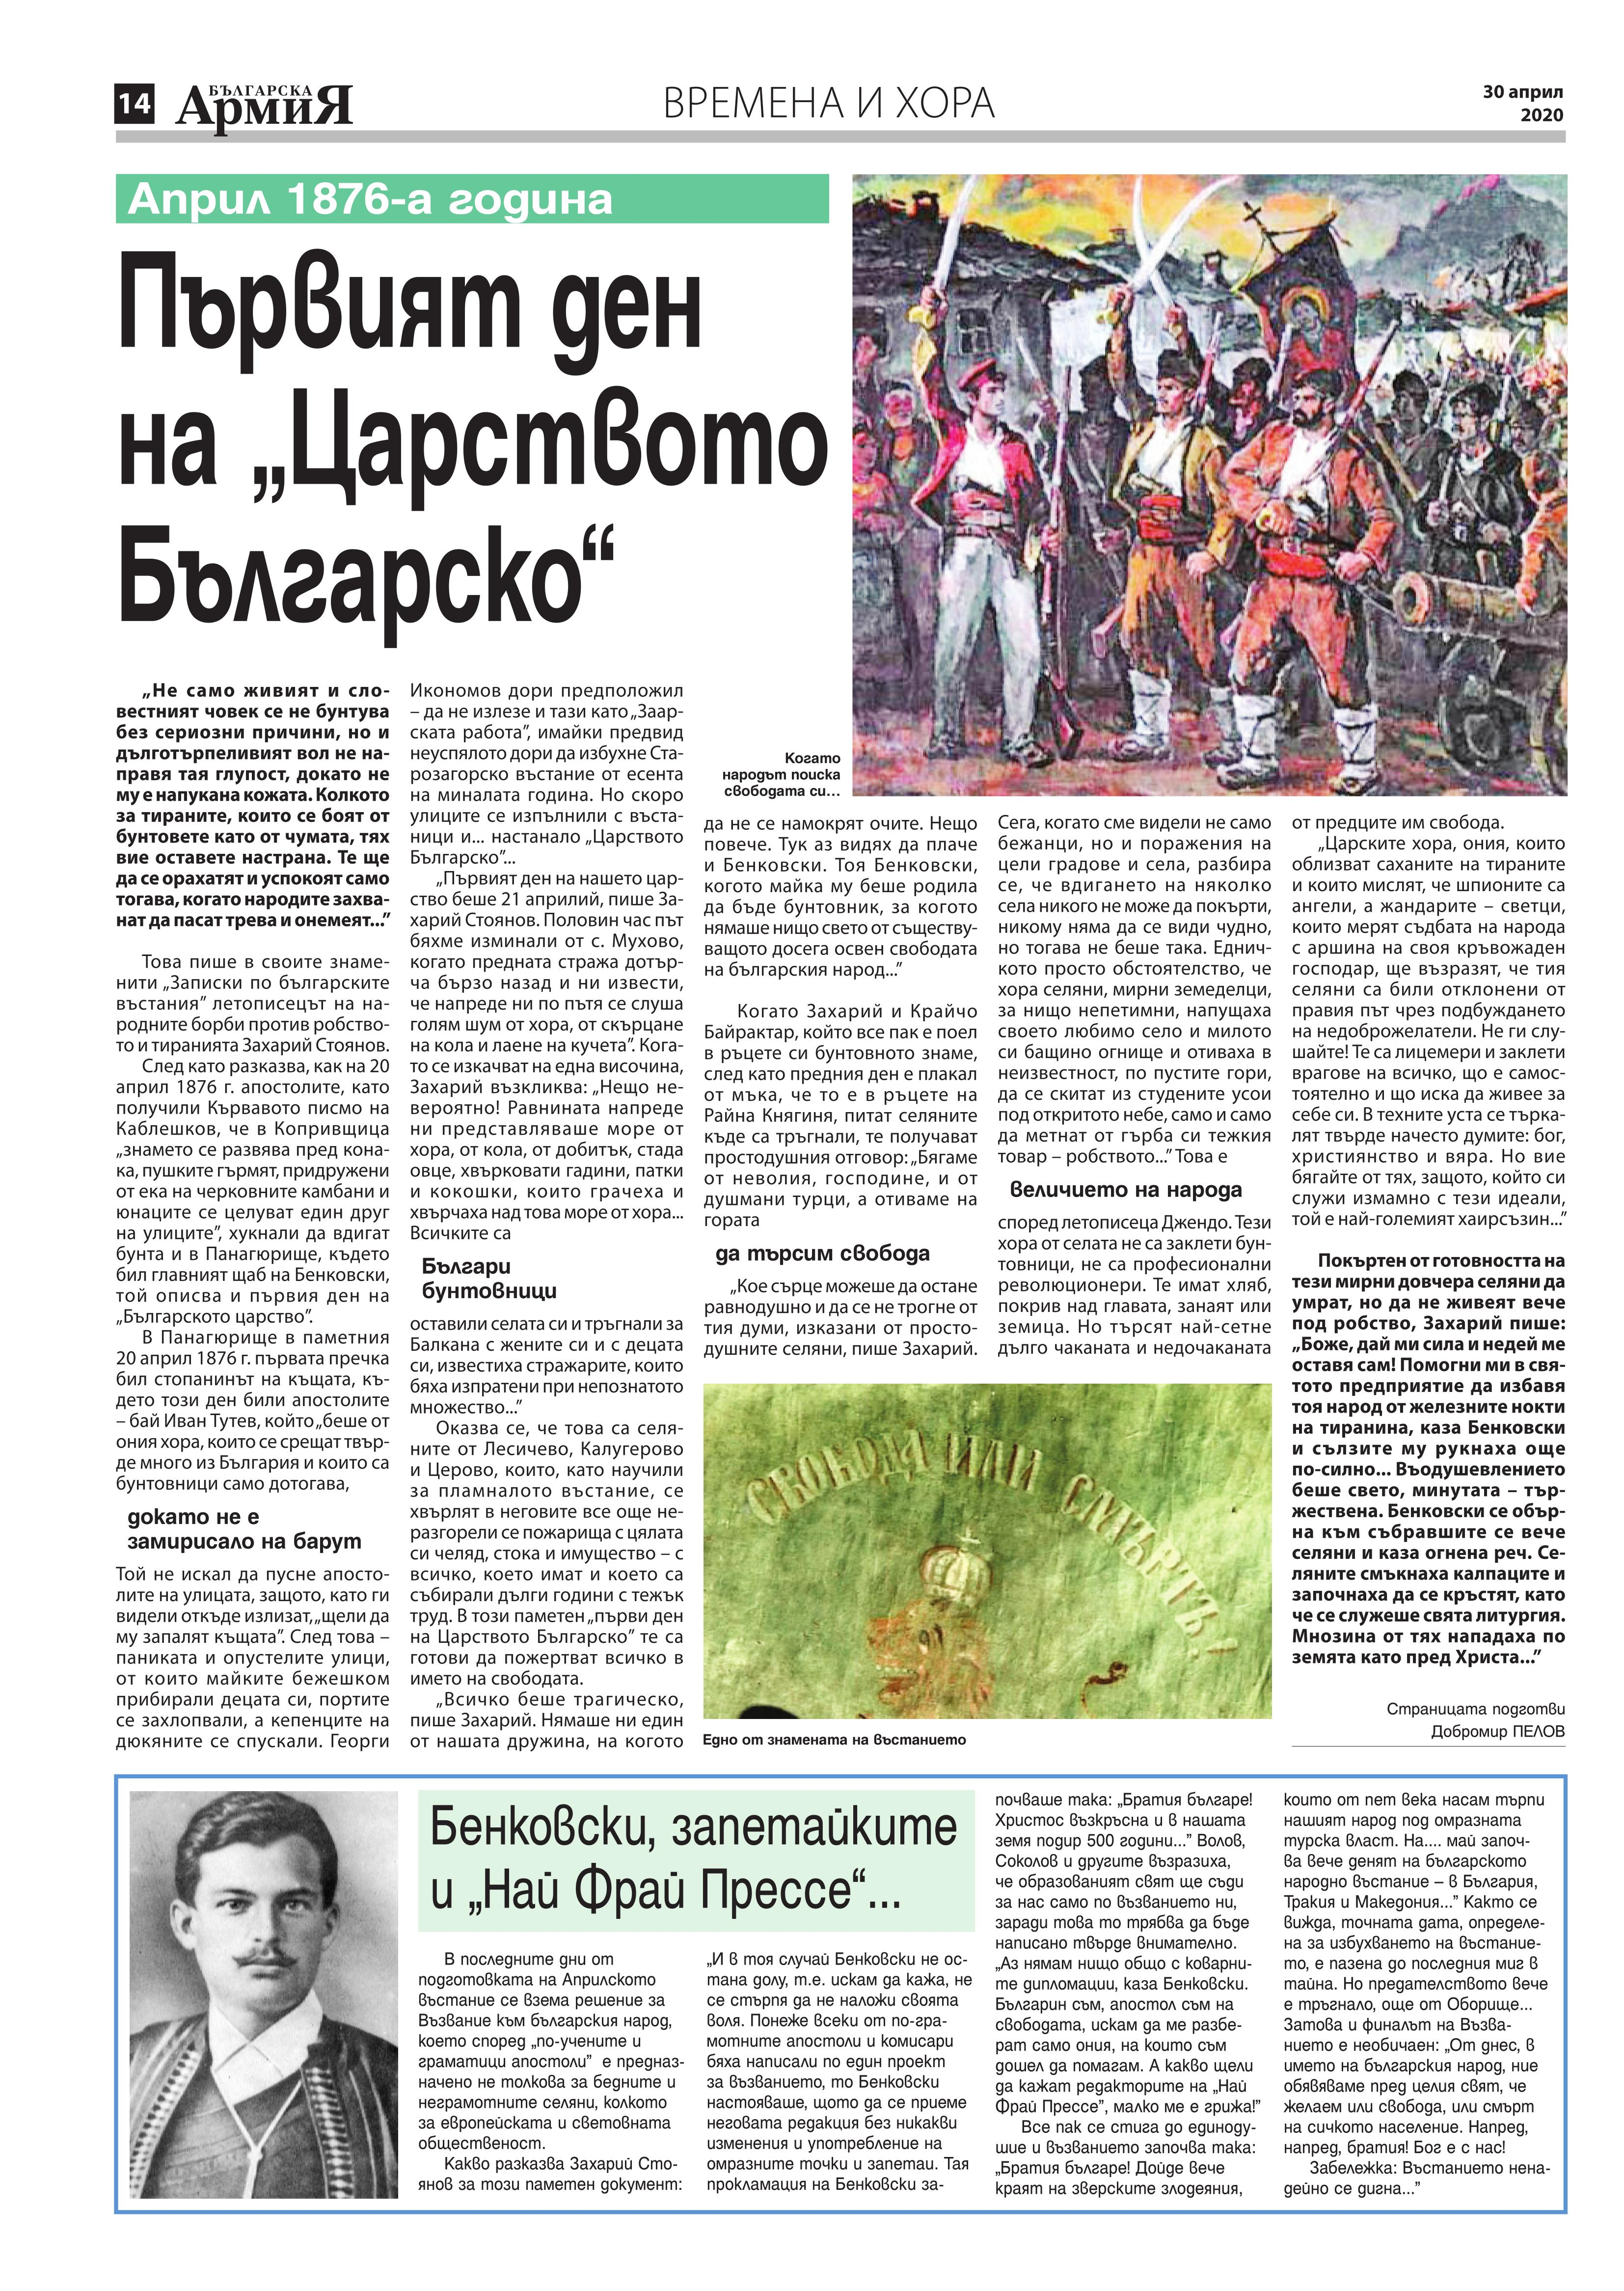 https://armymedia.bg/wp-content/uploads/2015/06/14.page1_-137.jpg